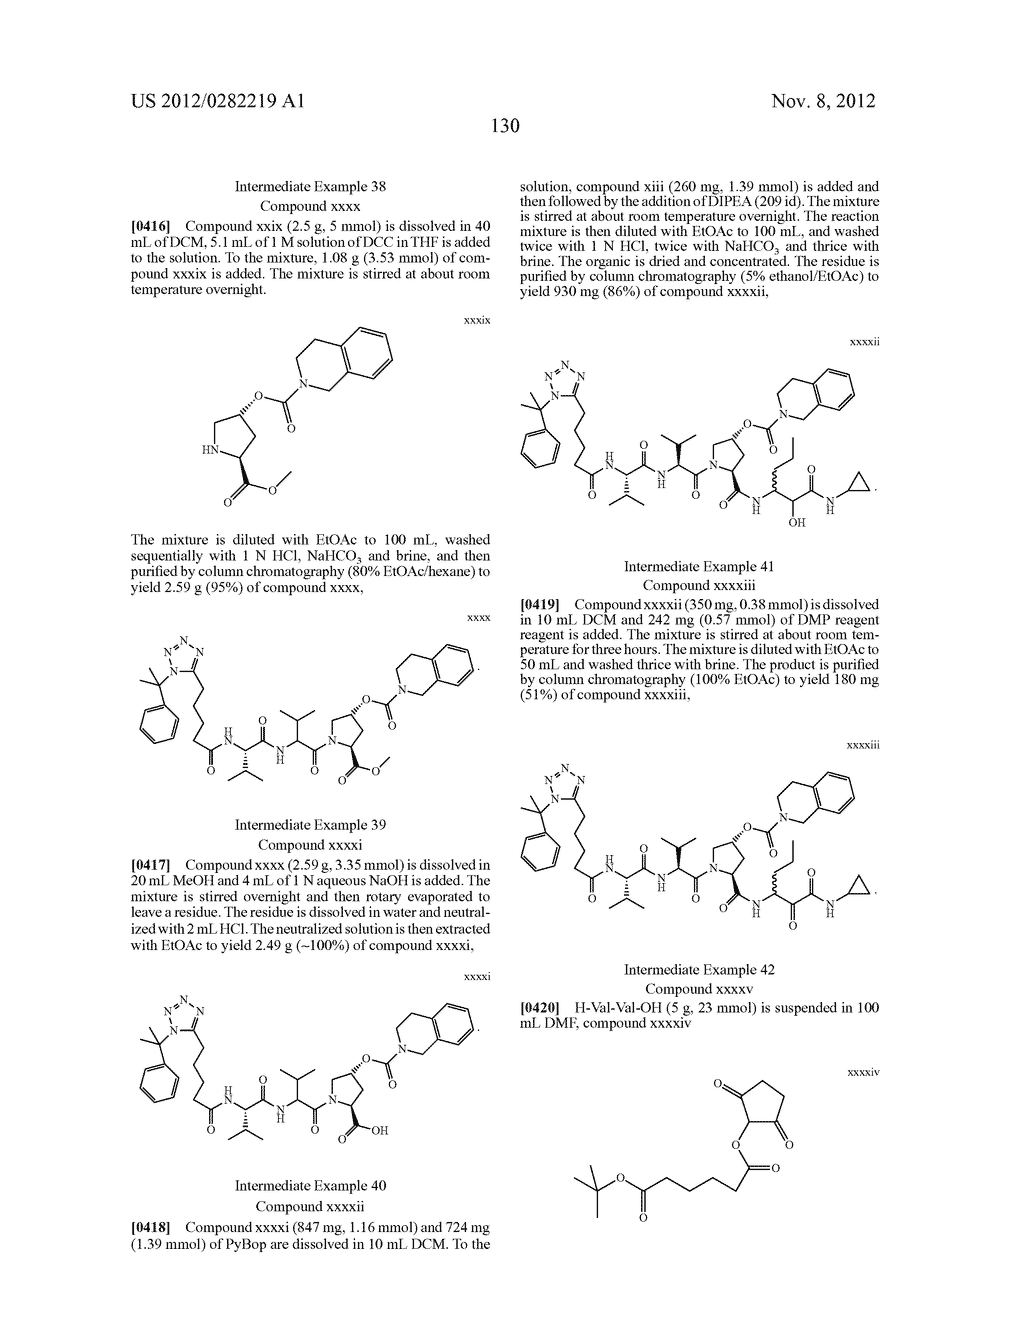 PEPTIDOMIMETIC PROTEASE INHIBITORS - diagram, schematic, and image 145